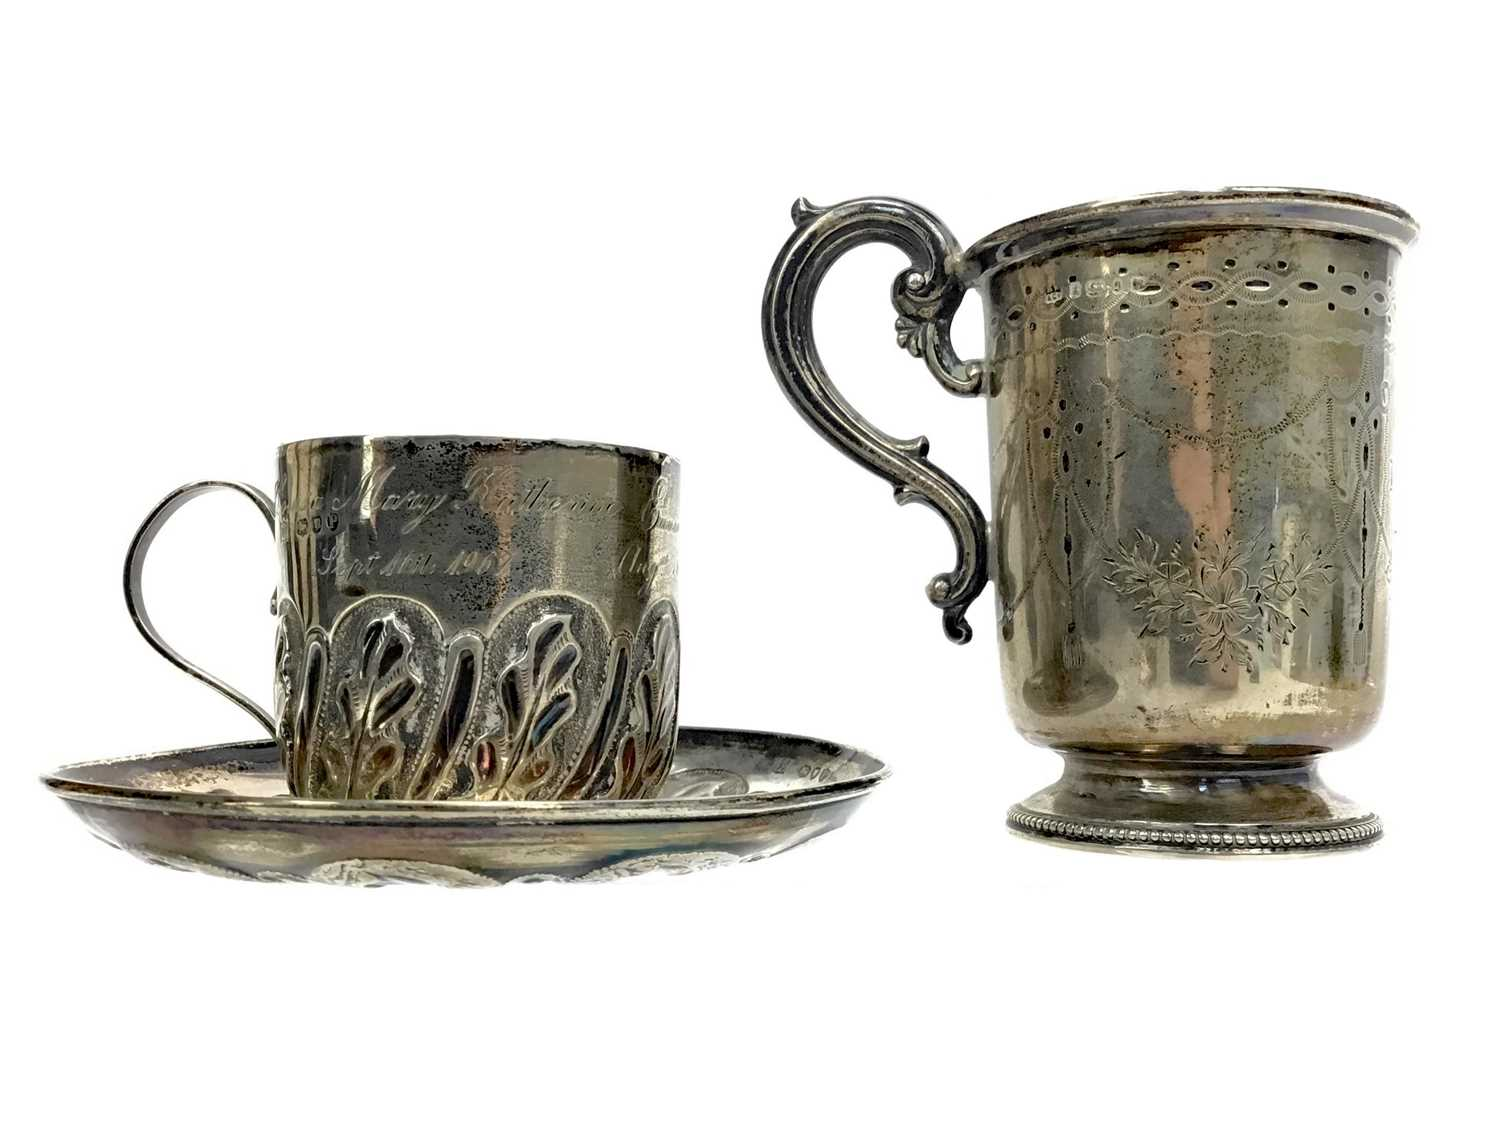 Lot 485 - A VICTORIAN SILVER CHRISTENING CUP ALONG WITH A CUP AND SAUCER